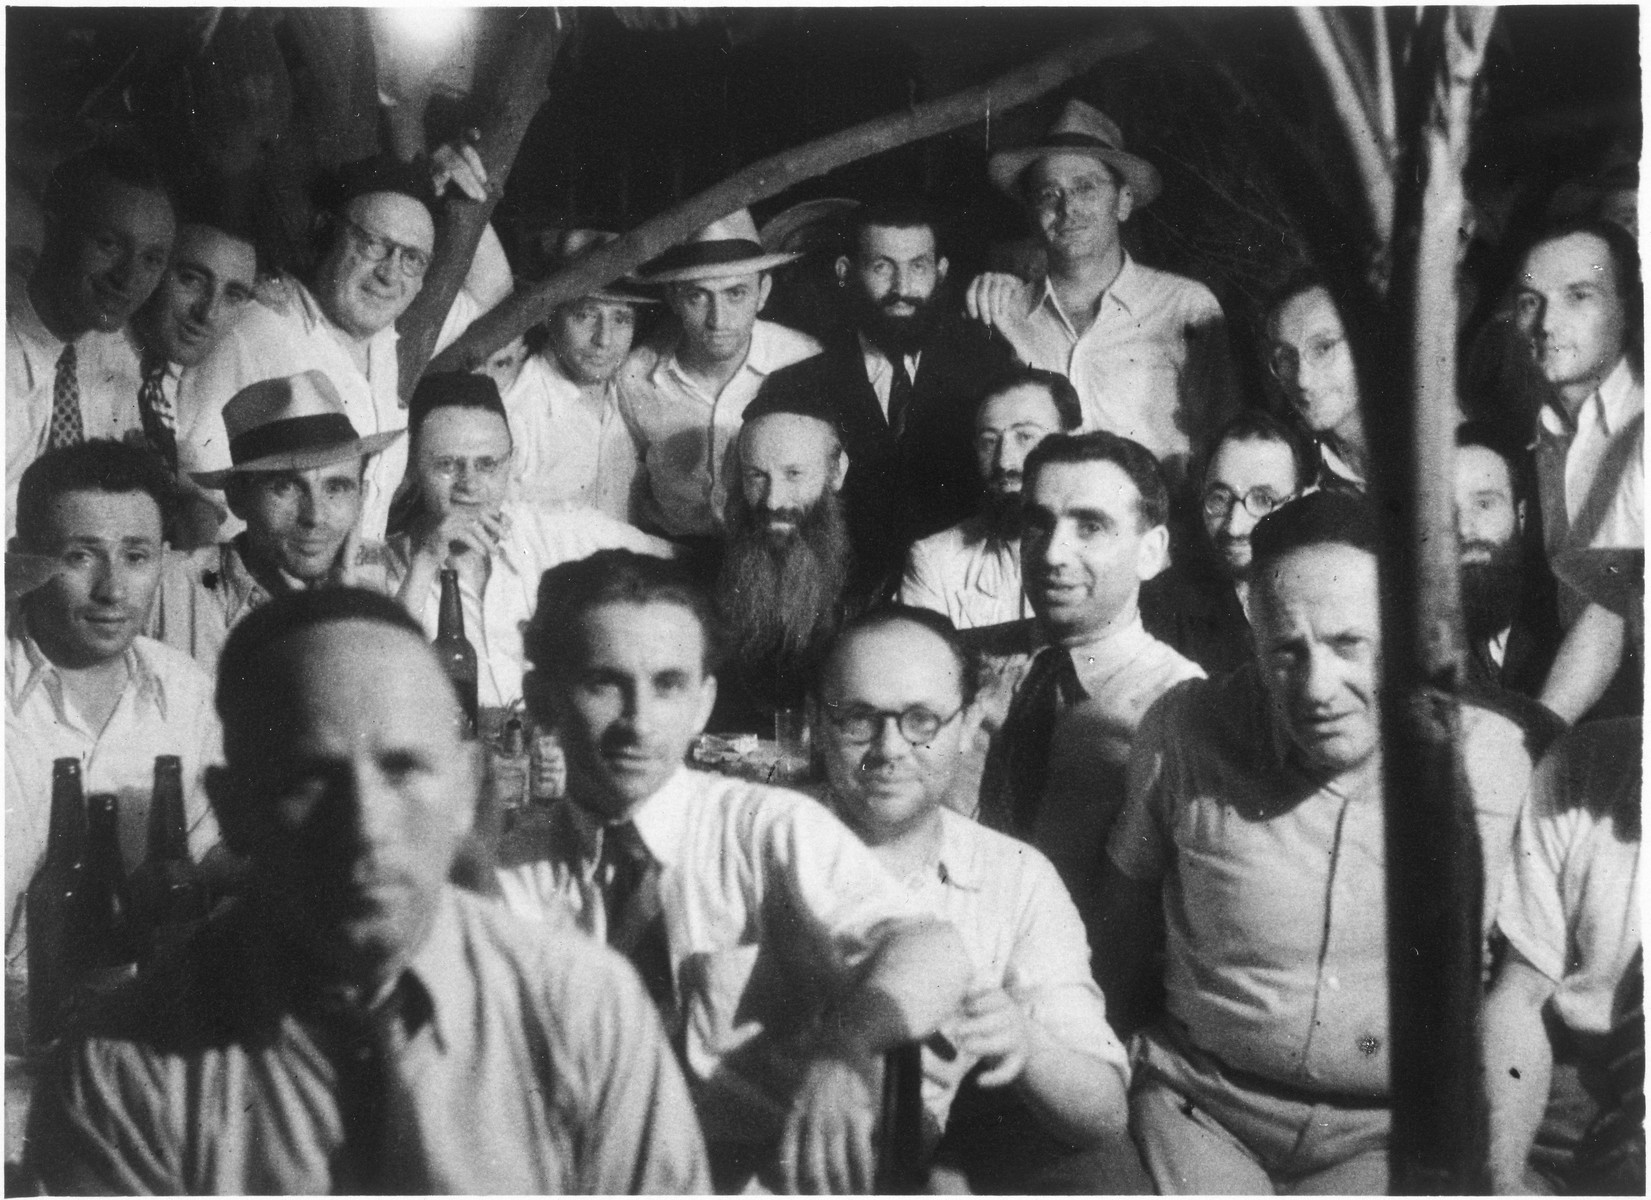 A group of Jewish refugee yeshiva students in Shanghai gather around Rabbi Samuel Walkin, the former rebbe of Lukatz Kreuz (near Poznan).  Rabbi Walkin is pictured in the center (with the long beard).  Pictured in the back row, center with a hat is Samuel Chaim Soroka.